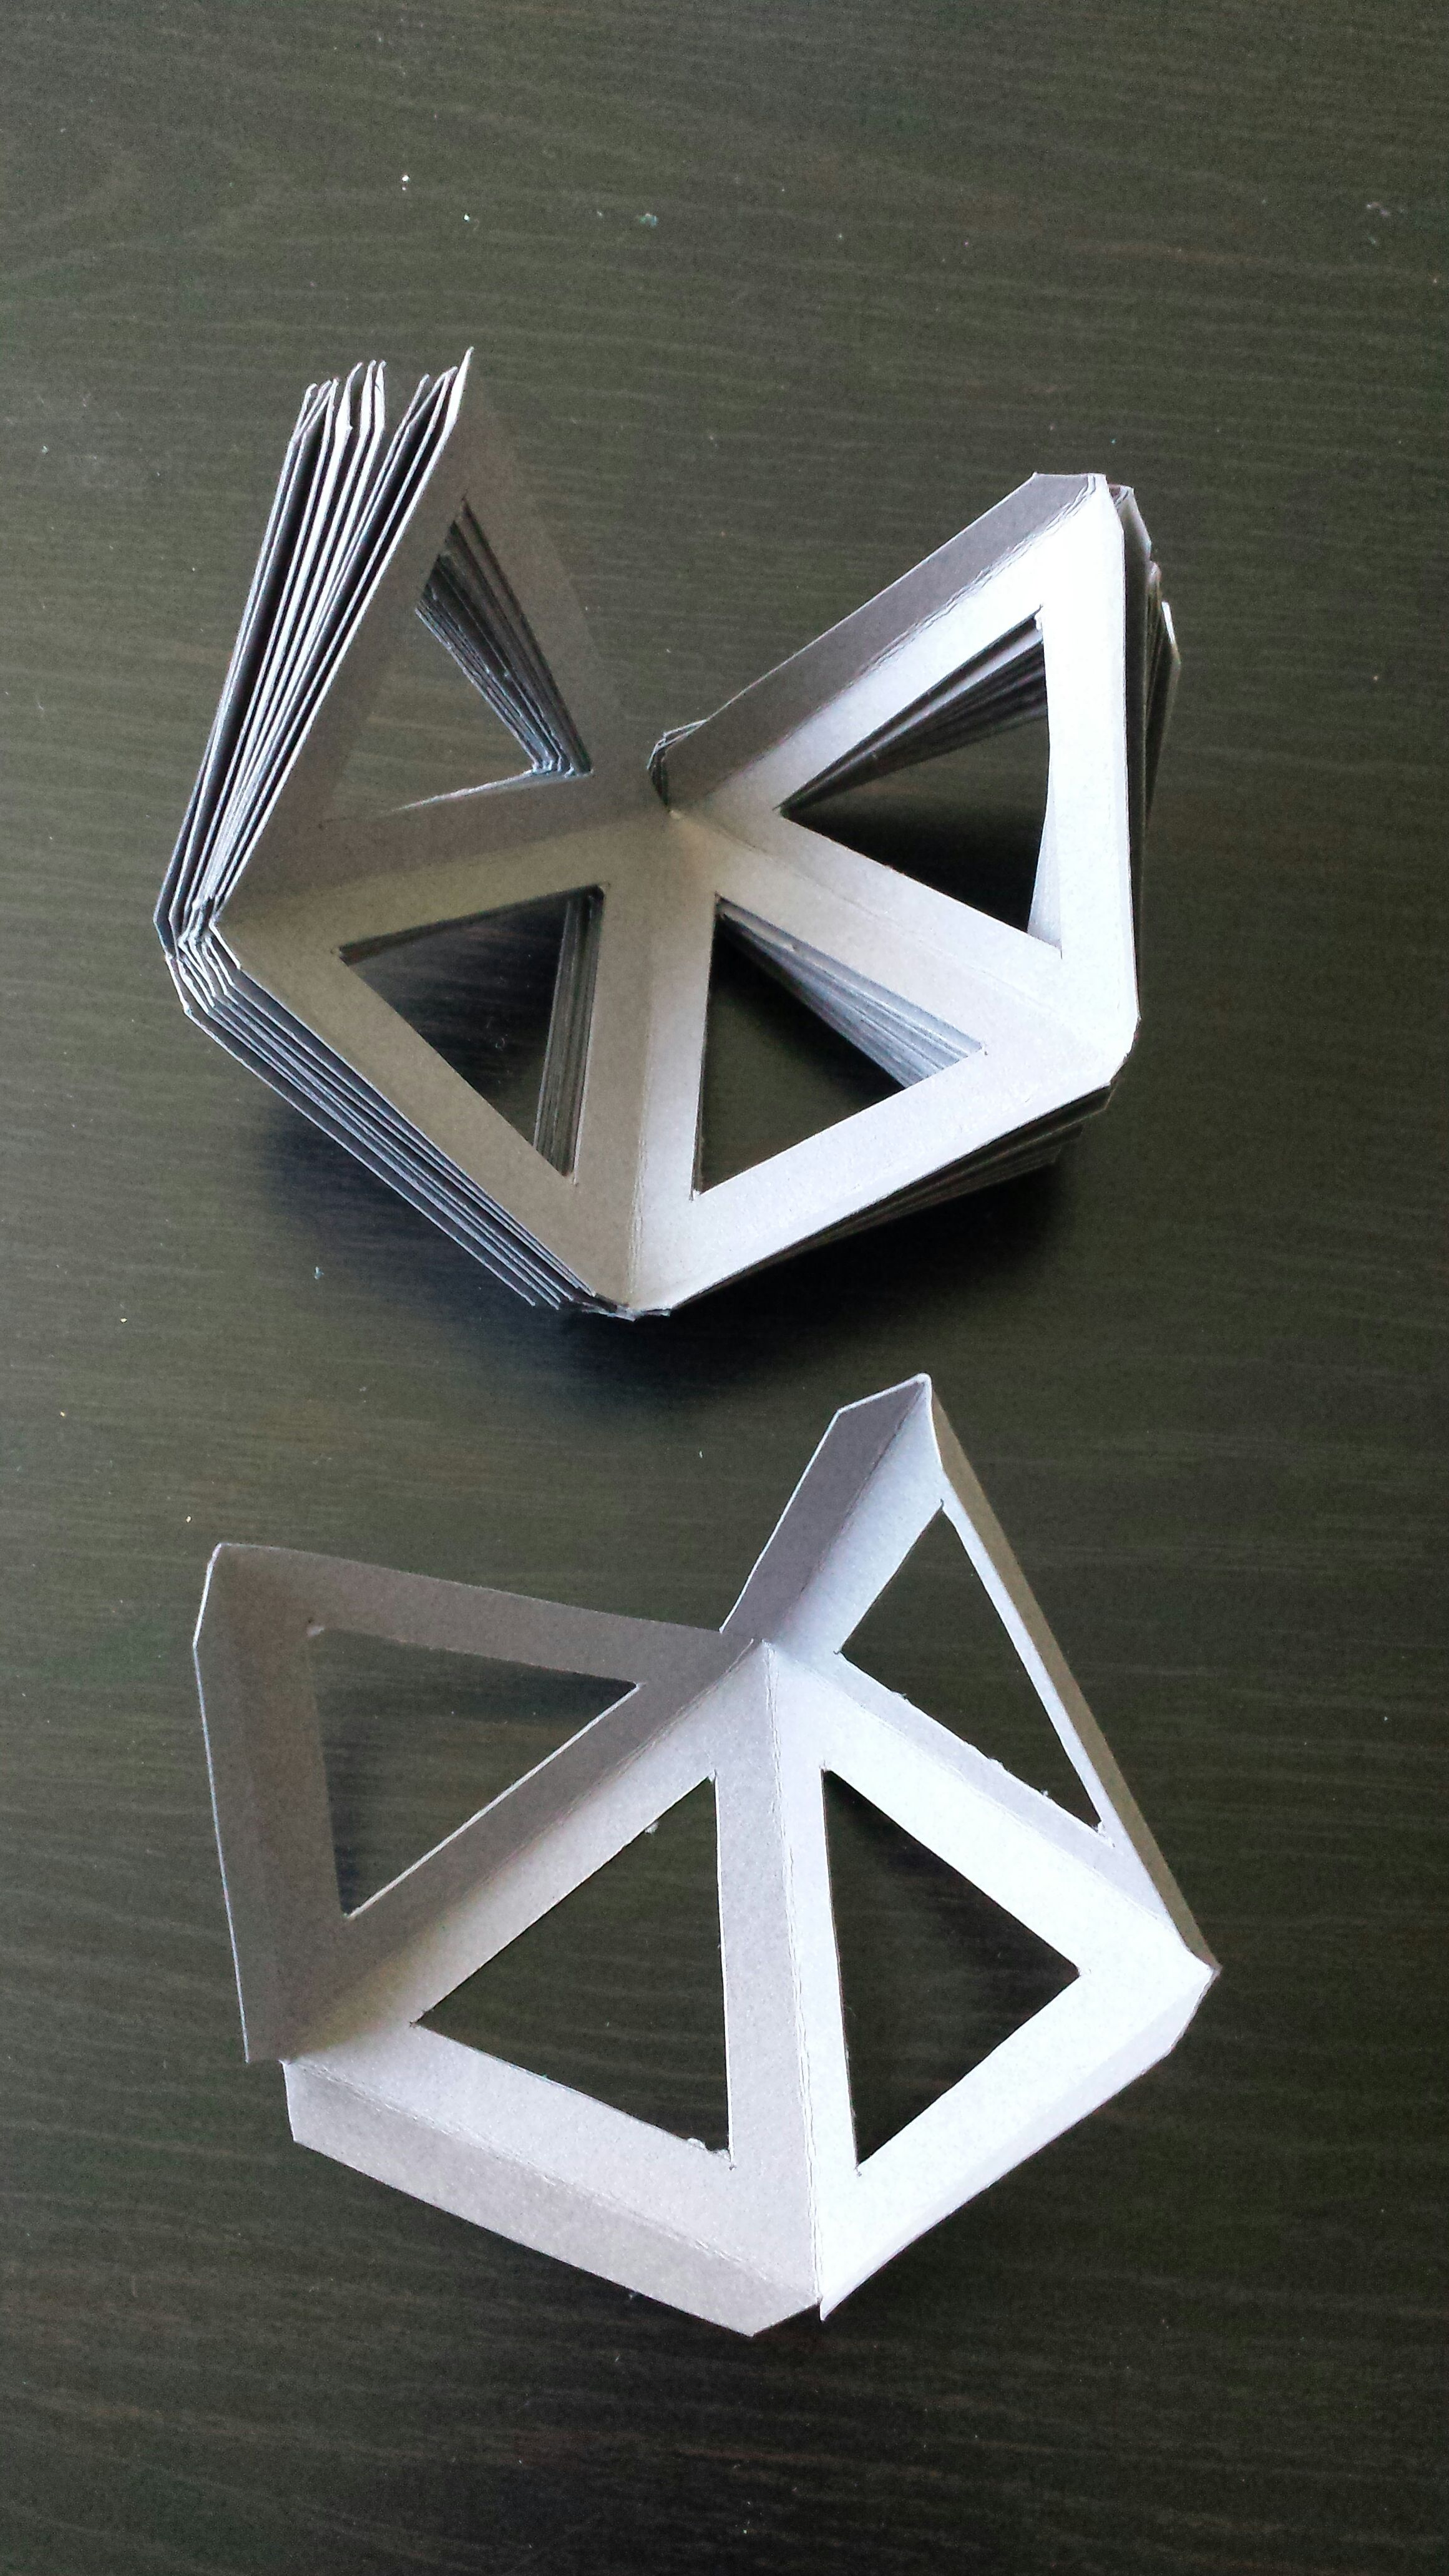 Picture of Spikes: Cutting and Folding